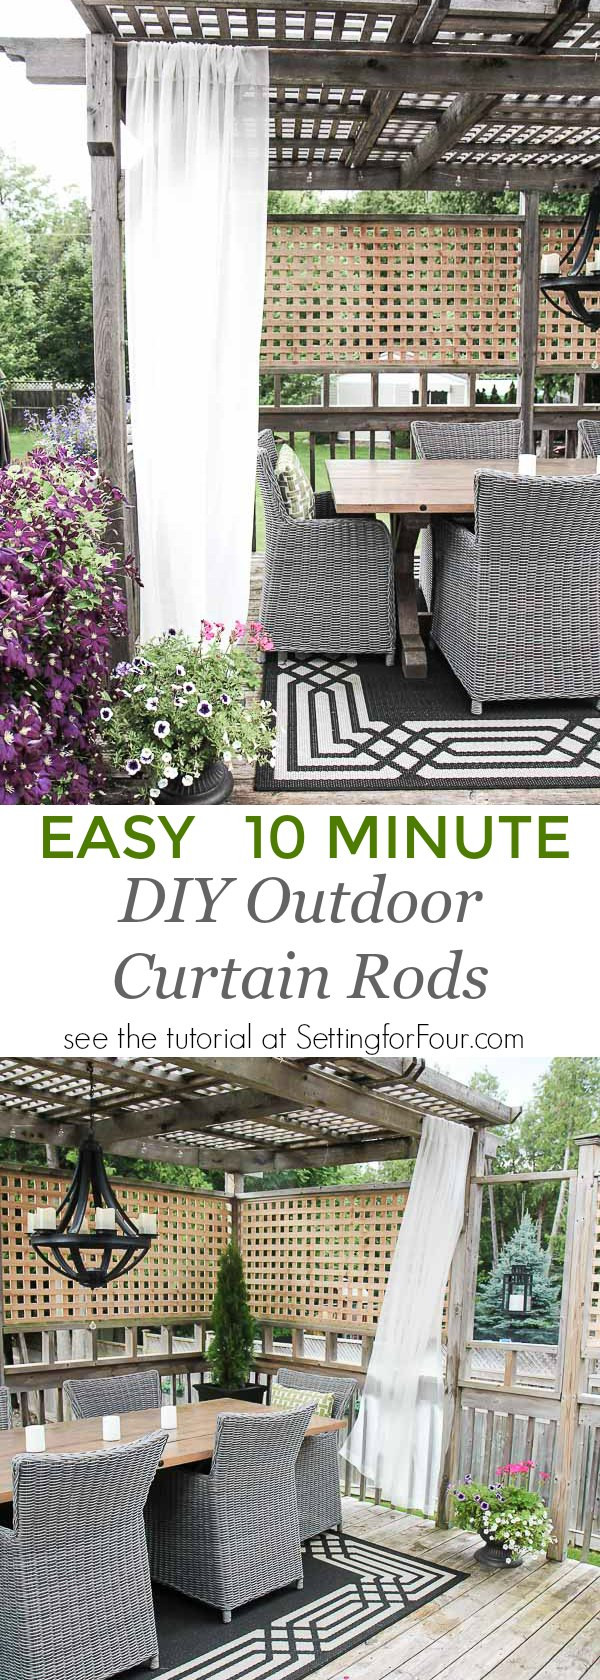 DIY Outdoor Curtain Rod  Easy DIY Outdoor Curtain Rods In 10 Minutes Setting for Four